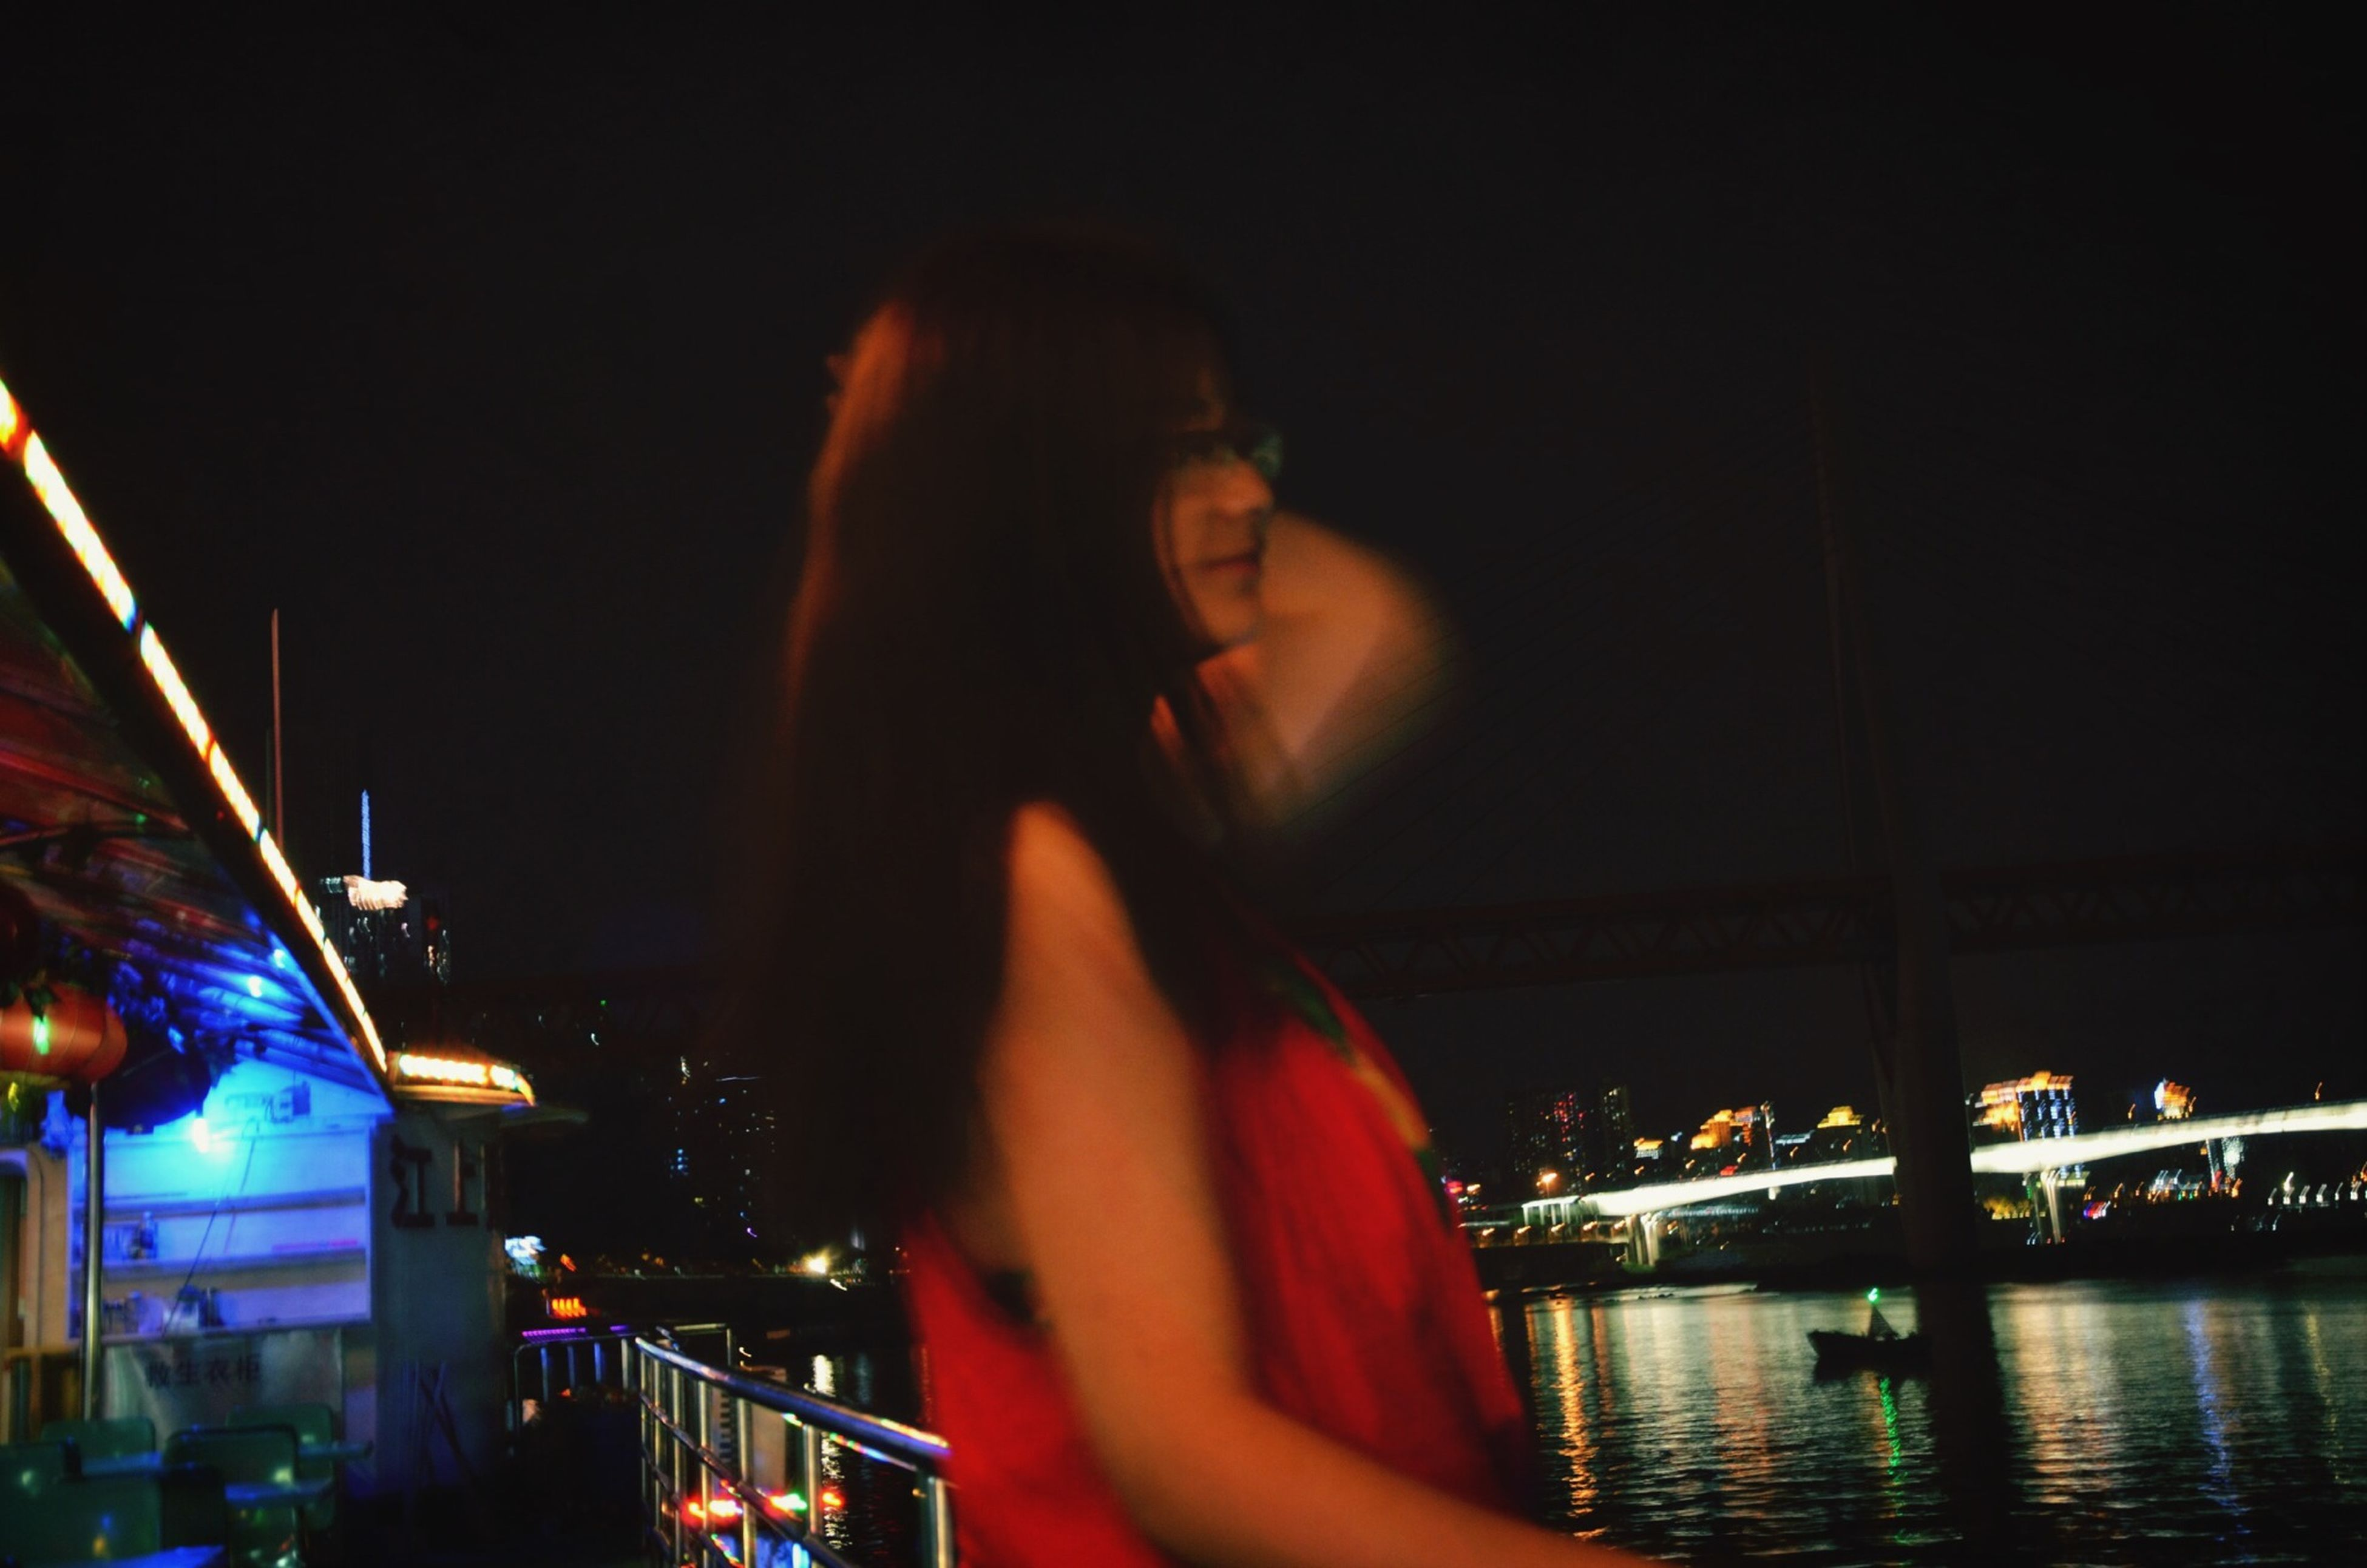 illuminated, night, lifestyles, leisure activity, young adult, architecture, building exterior, built structure, water, headshot, city, arts culture and entertainment, waist up, young women, reflection, standing, person, three quarter length